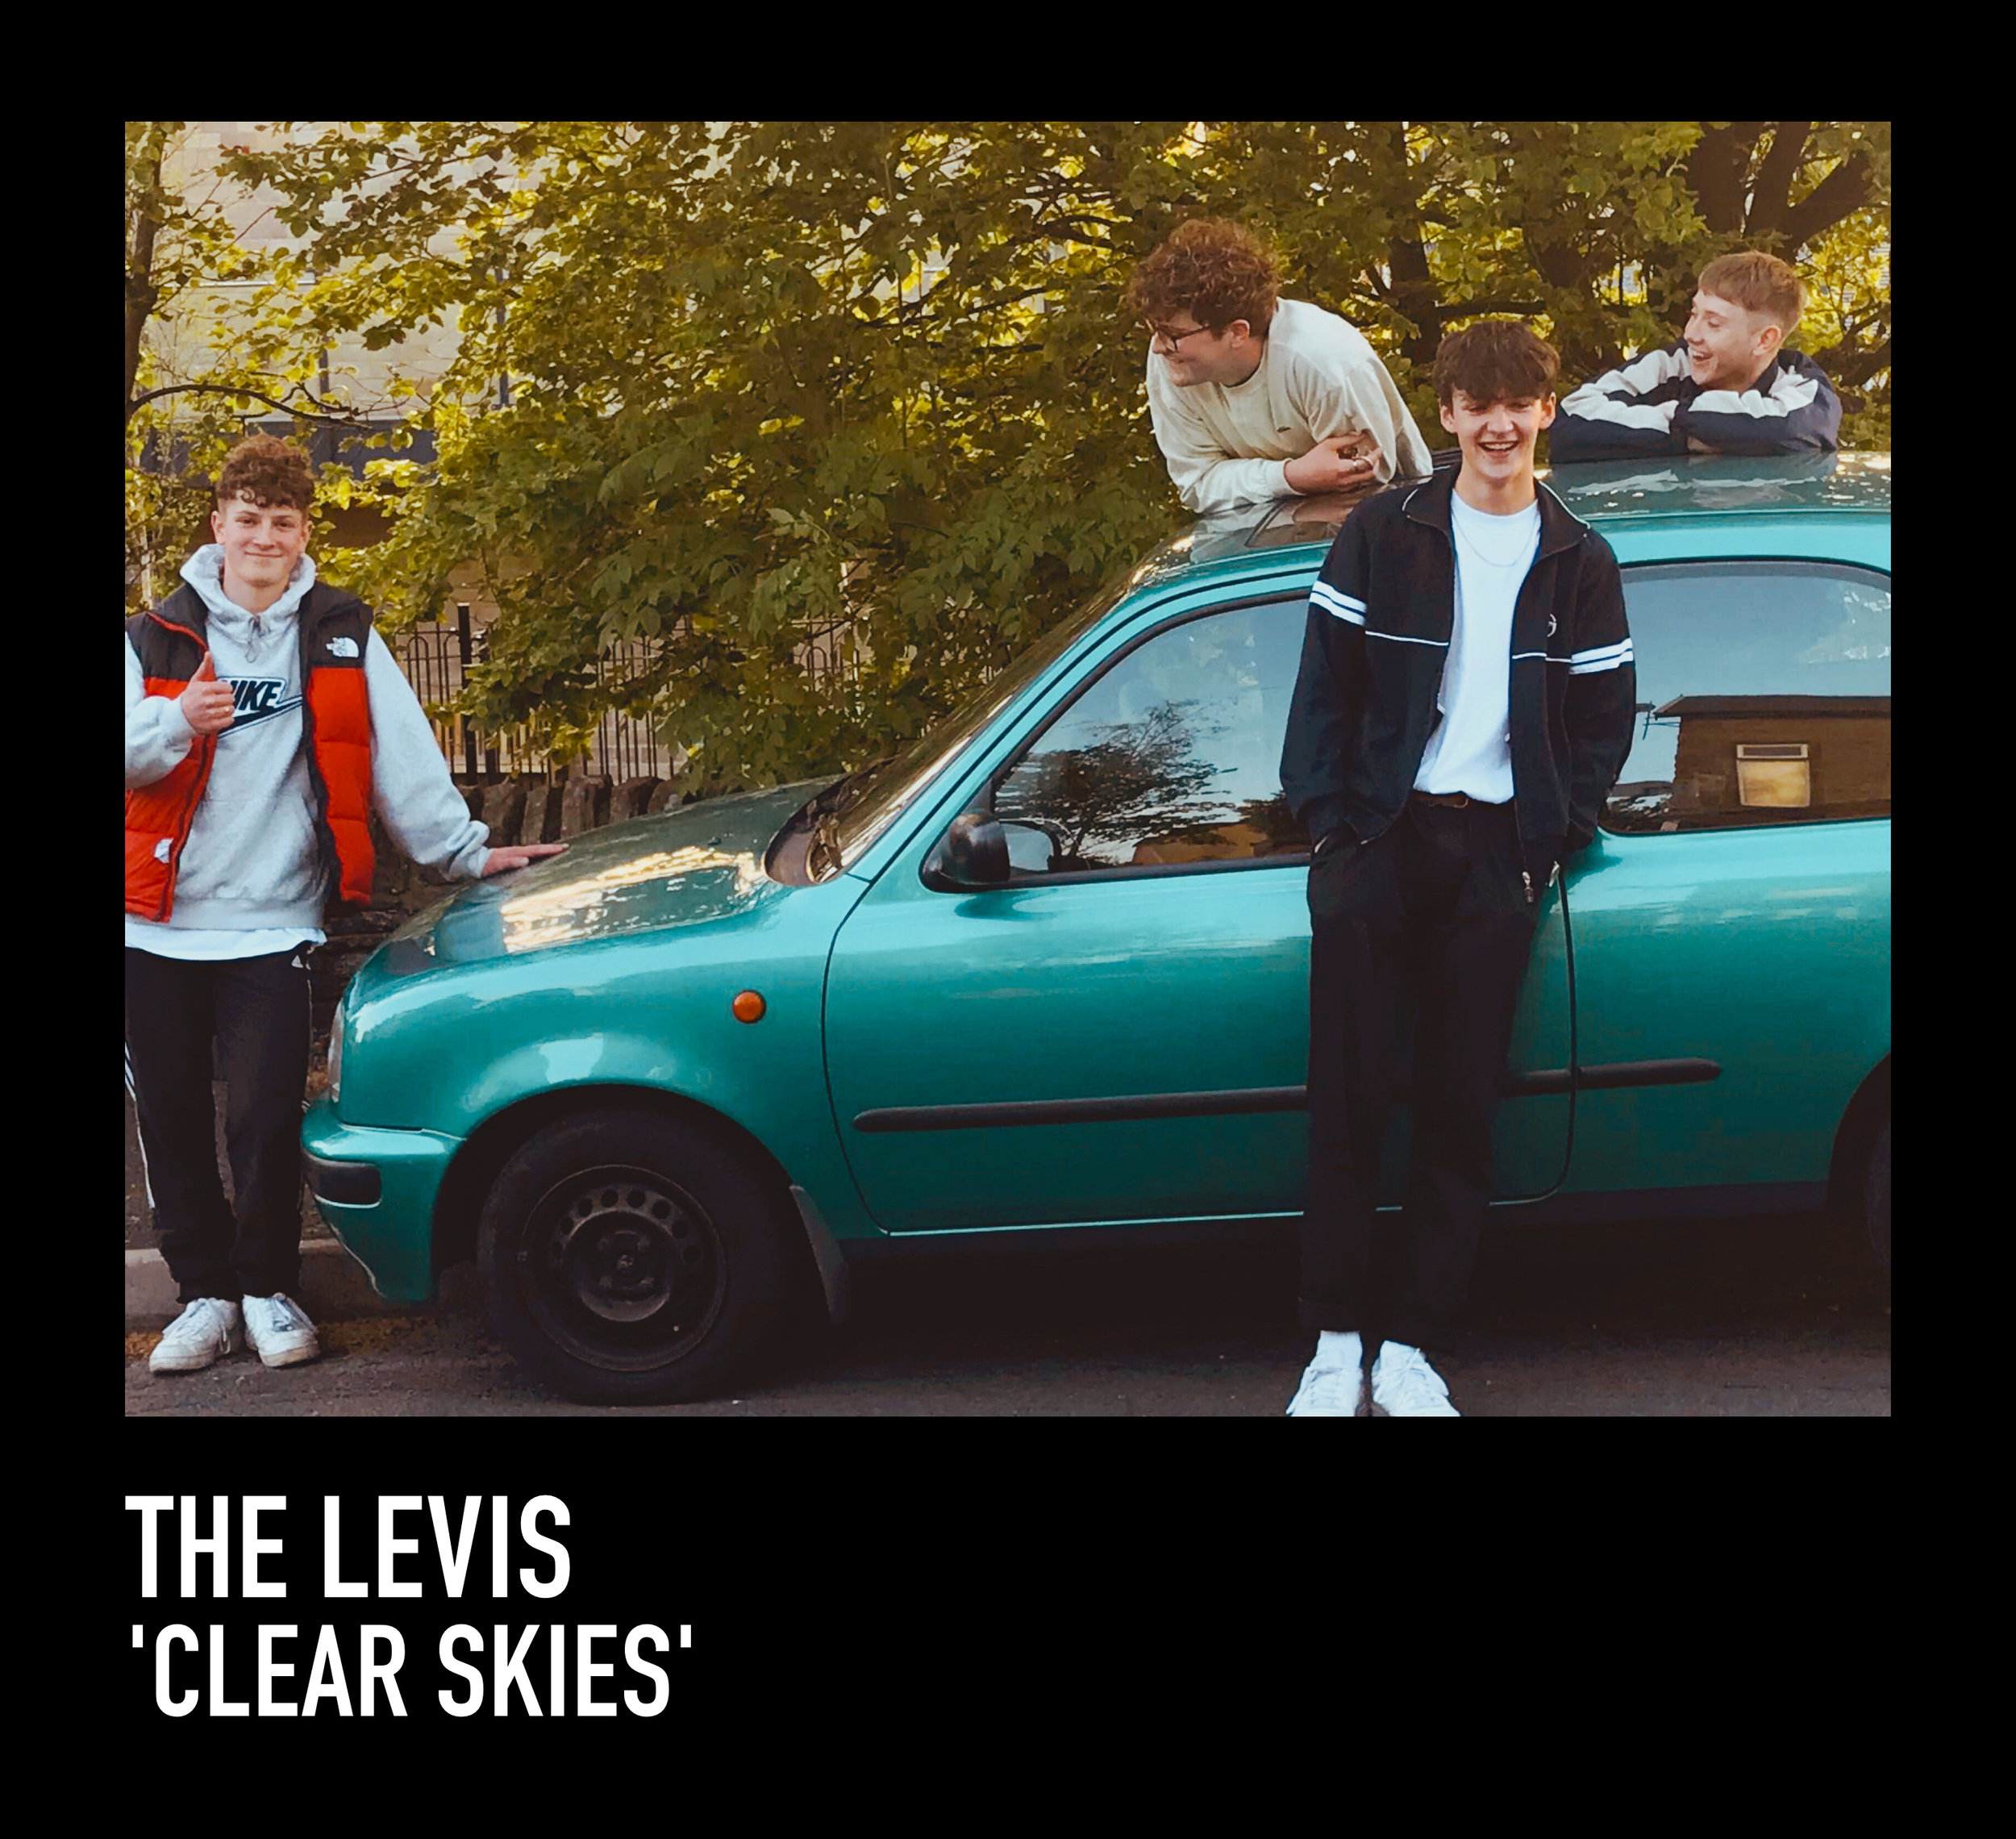 Infectious, melodic swooning indie perfection